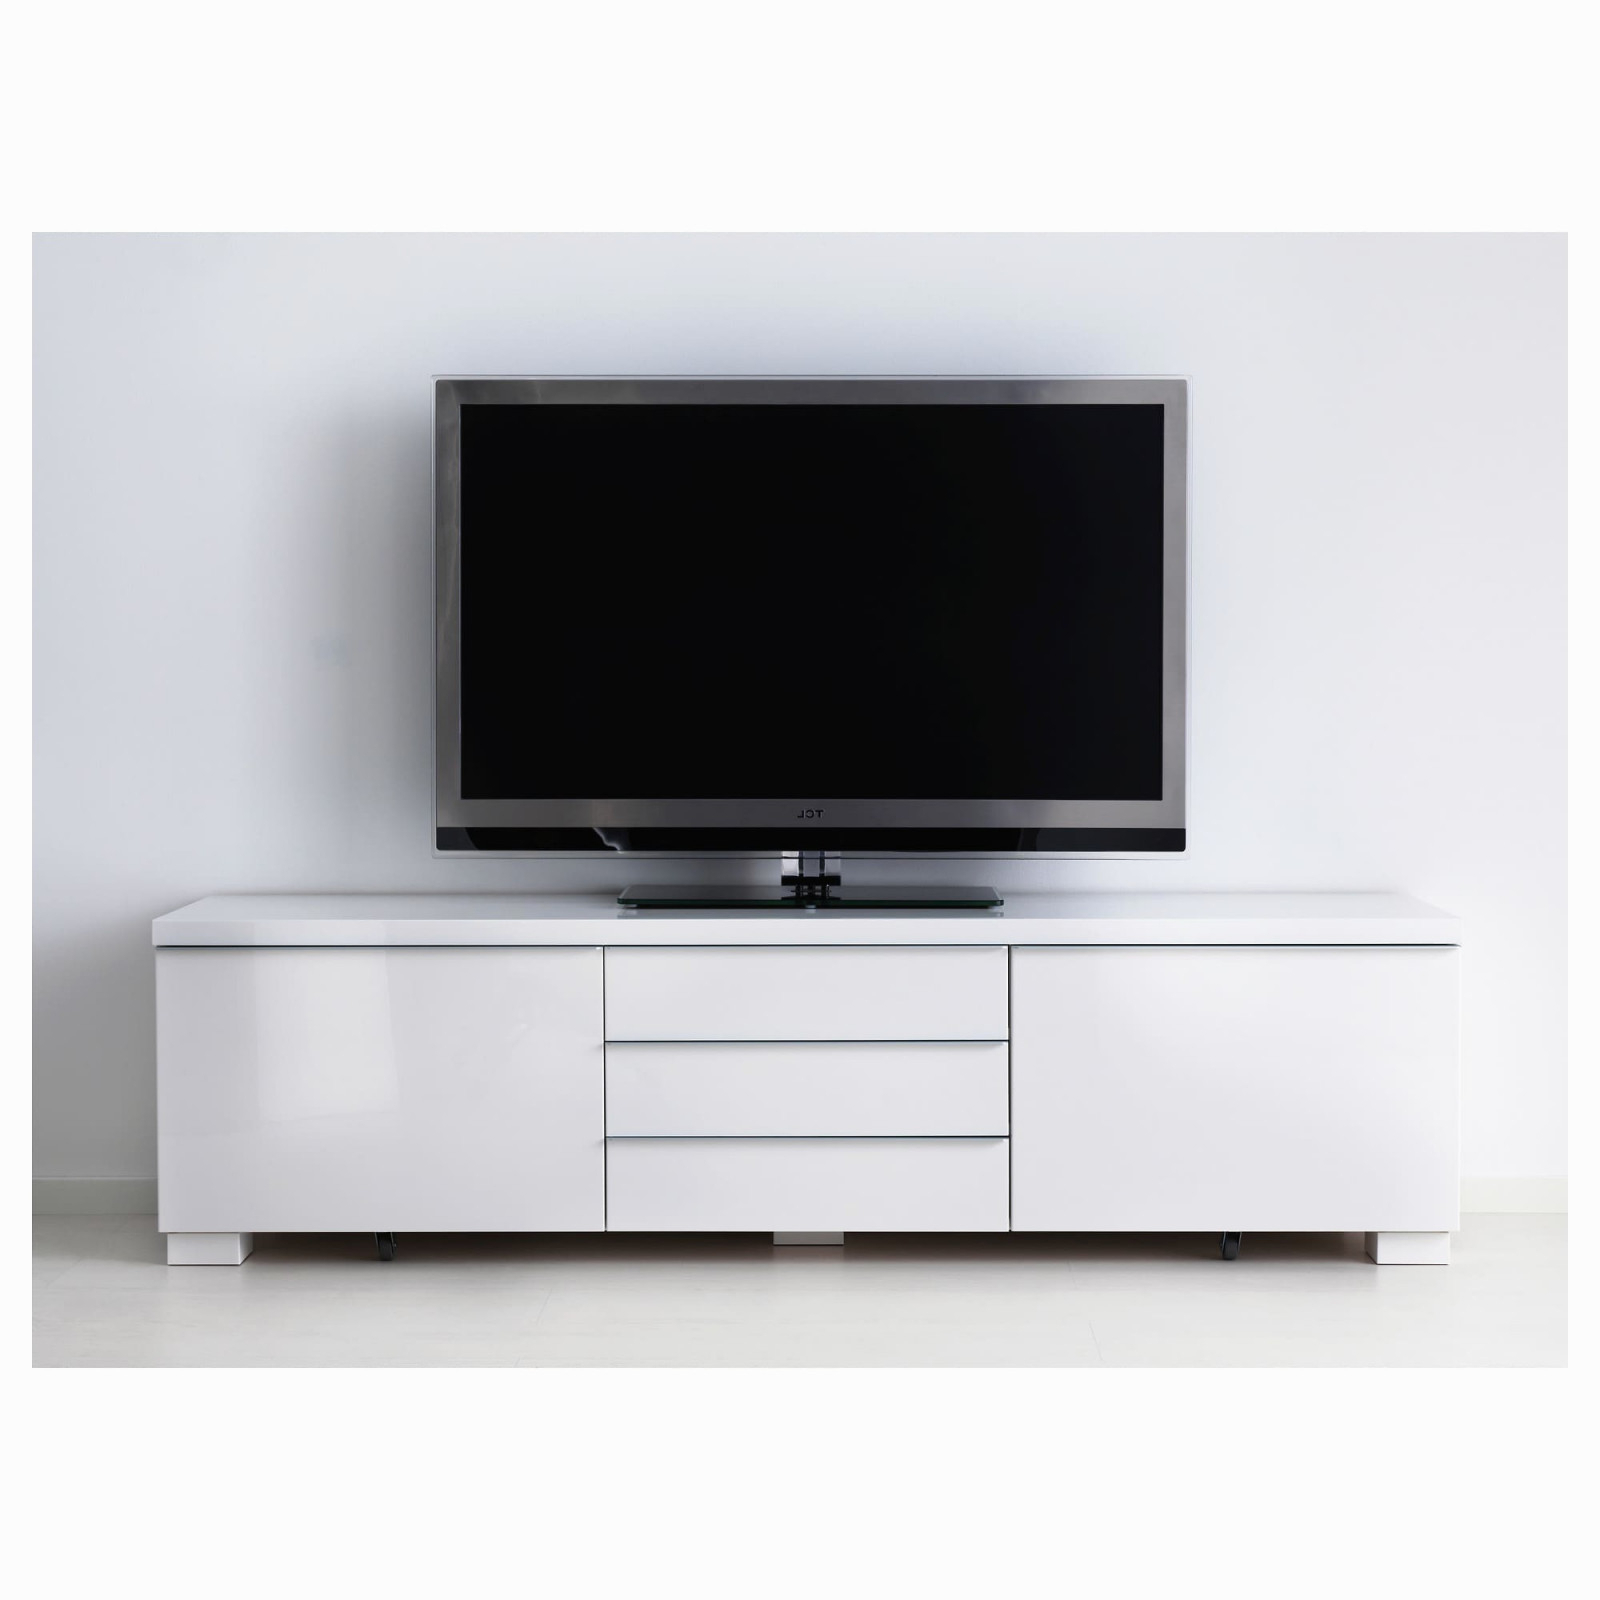 Favorite Sheesham Tv Stand Branché 41 Ideas Fresh Bedroom Tv Cabinet With Within Sheesham Tv Stands (View 12 of 20)